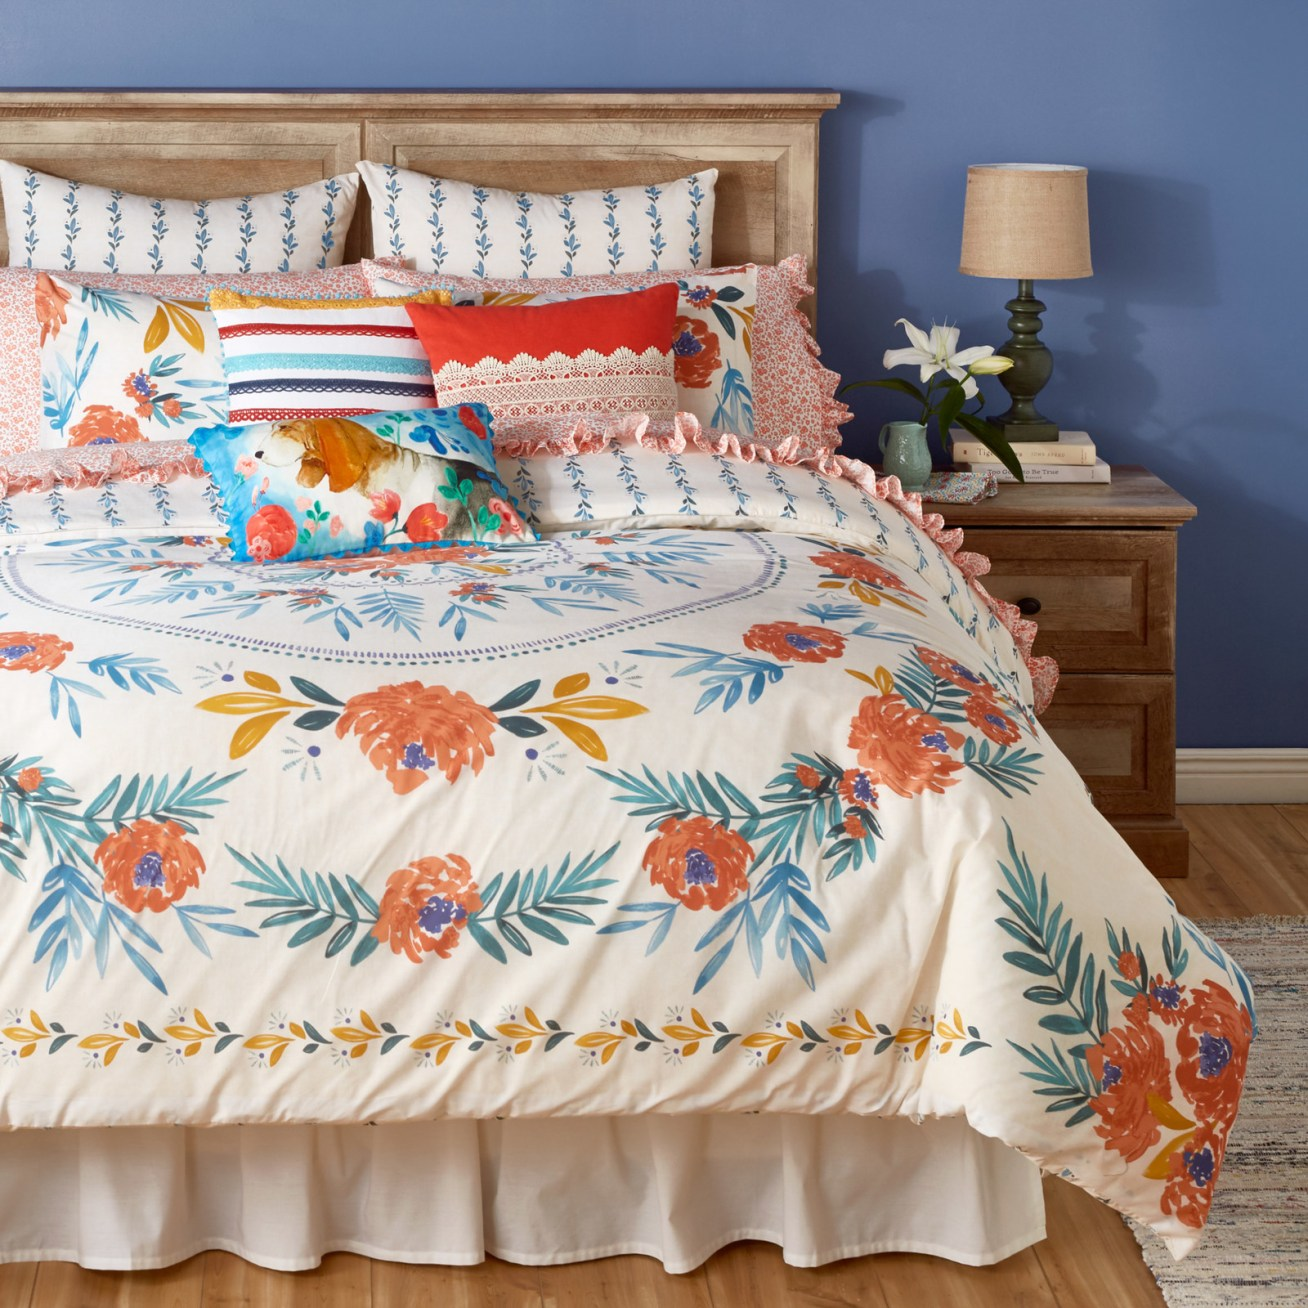 "Promising review: ""This is a lovely and romantic duvet cover that lends a gentle but graphic 'shabby chic' element to the bedroom. The floral medallion in the center is a great design, one not often seen in duvet covers or bedding. I agree with another reviewer in that it could have come from Anthropologie or a similar high-end online vendor. This is a great duvet cover for the money!"" —ParisRoseLadyPrice: .99"